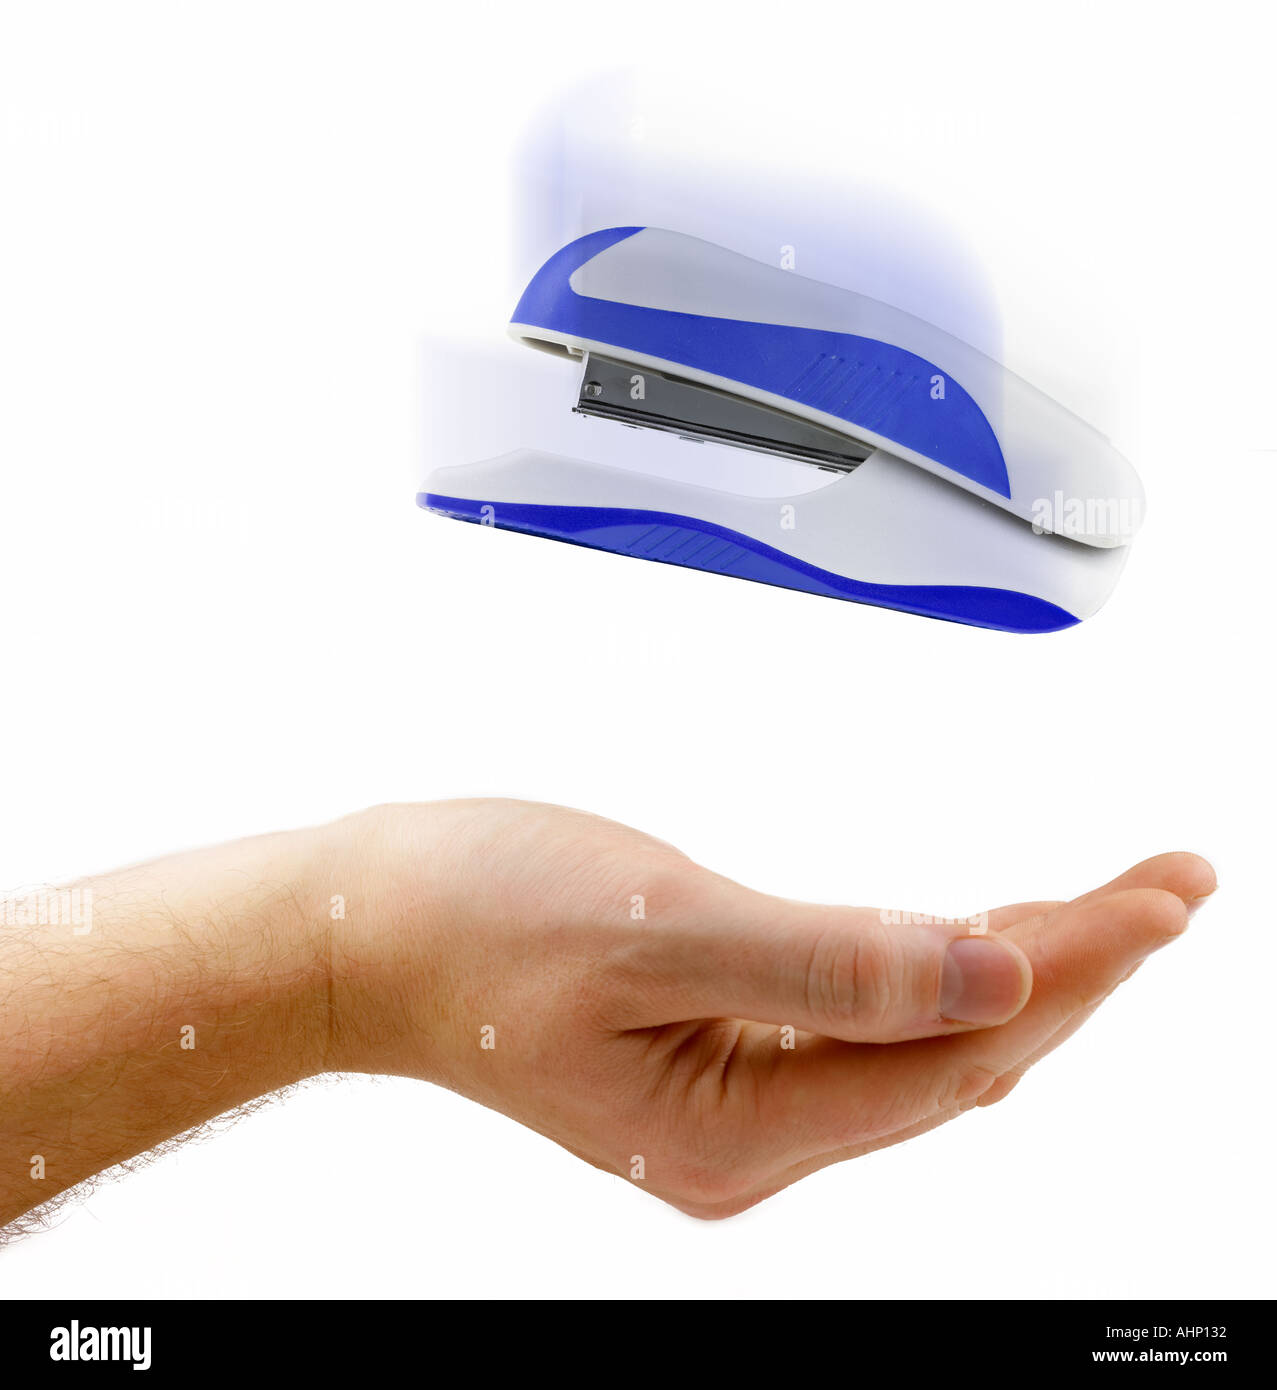 Office Stapler Falling into Hand Workplace theft Concept - Stock Image